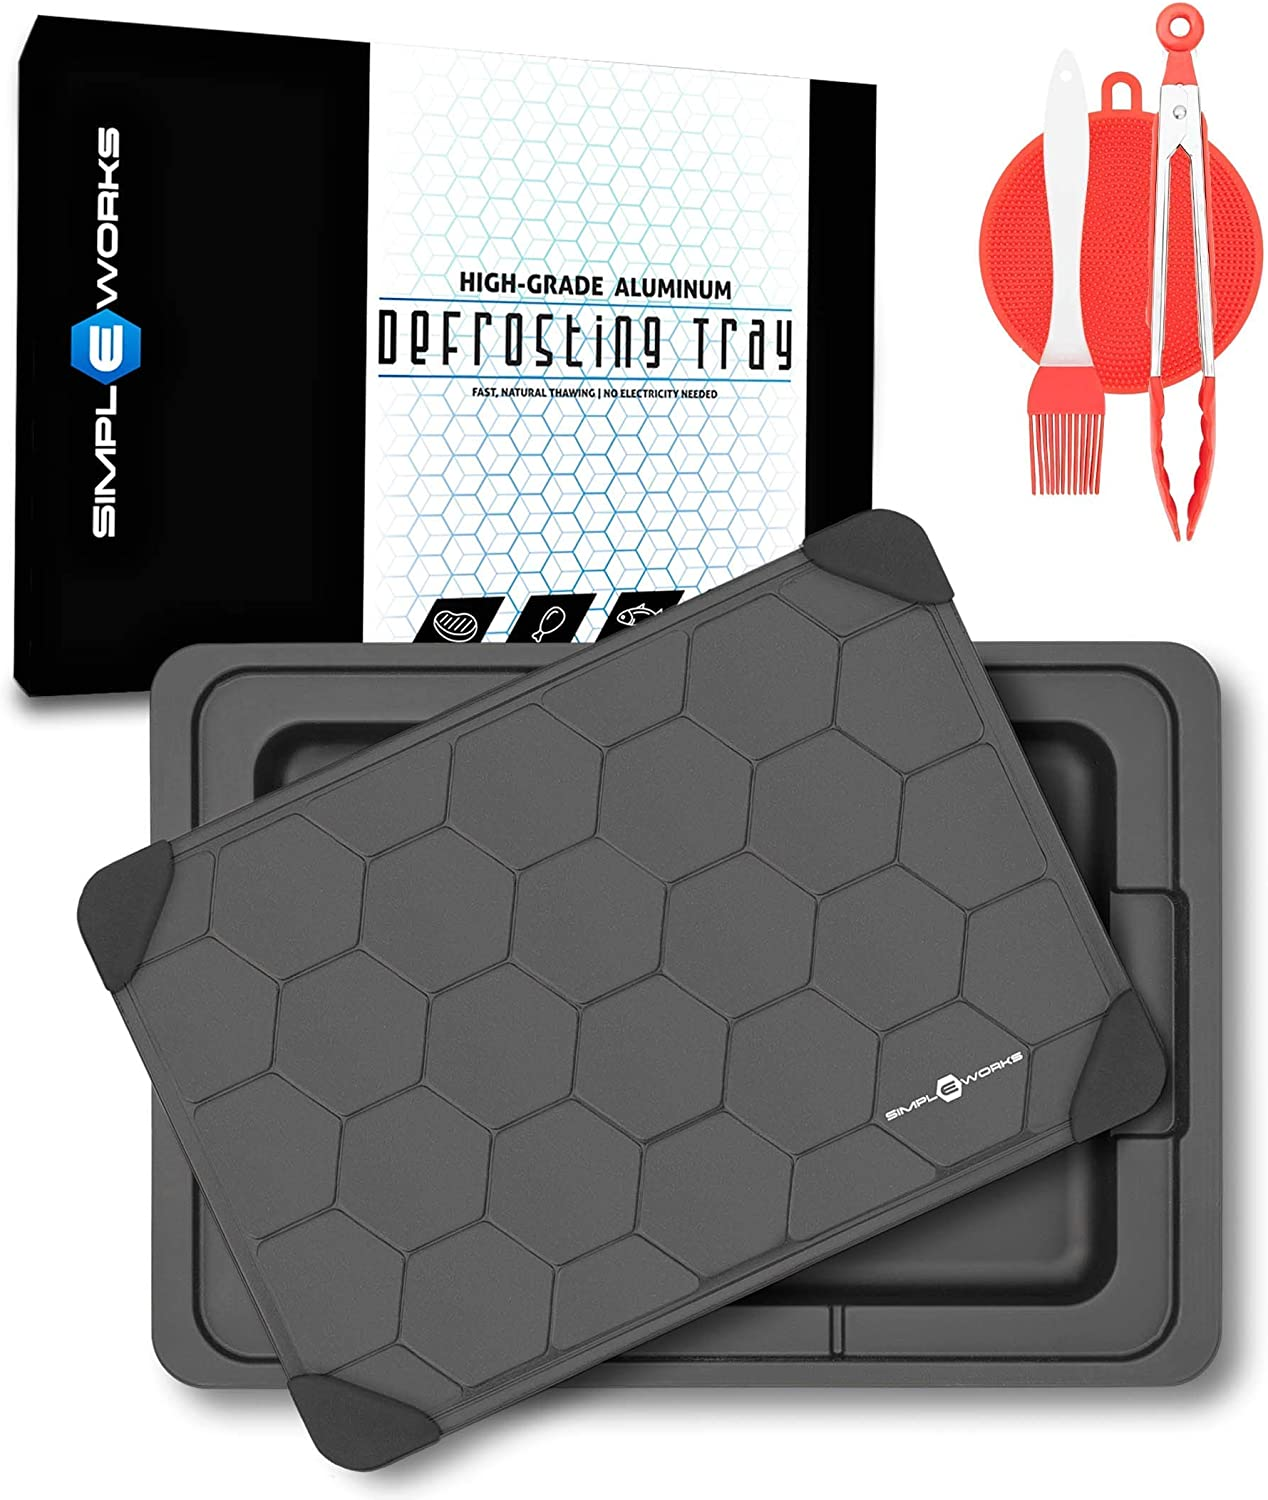 simplEworks Defrosting Tray | High-Grade Aluminum Fast Defrosting Tray with Drip Pan and Bonus Accessories | Defrosting Plate for Meat | Standard Size Thawing Plate | Naturally Thaw Frozen Food